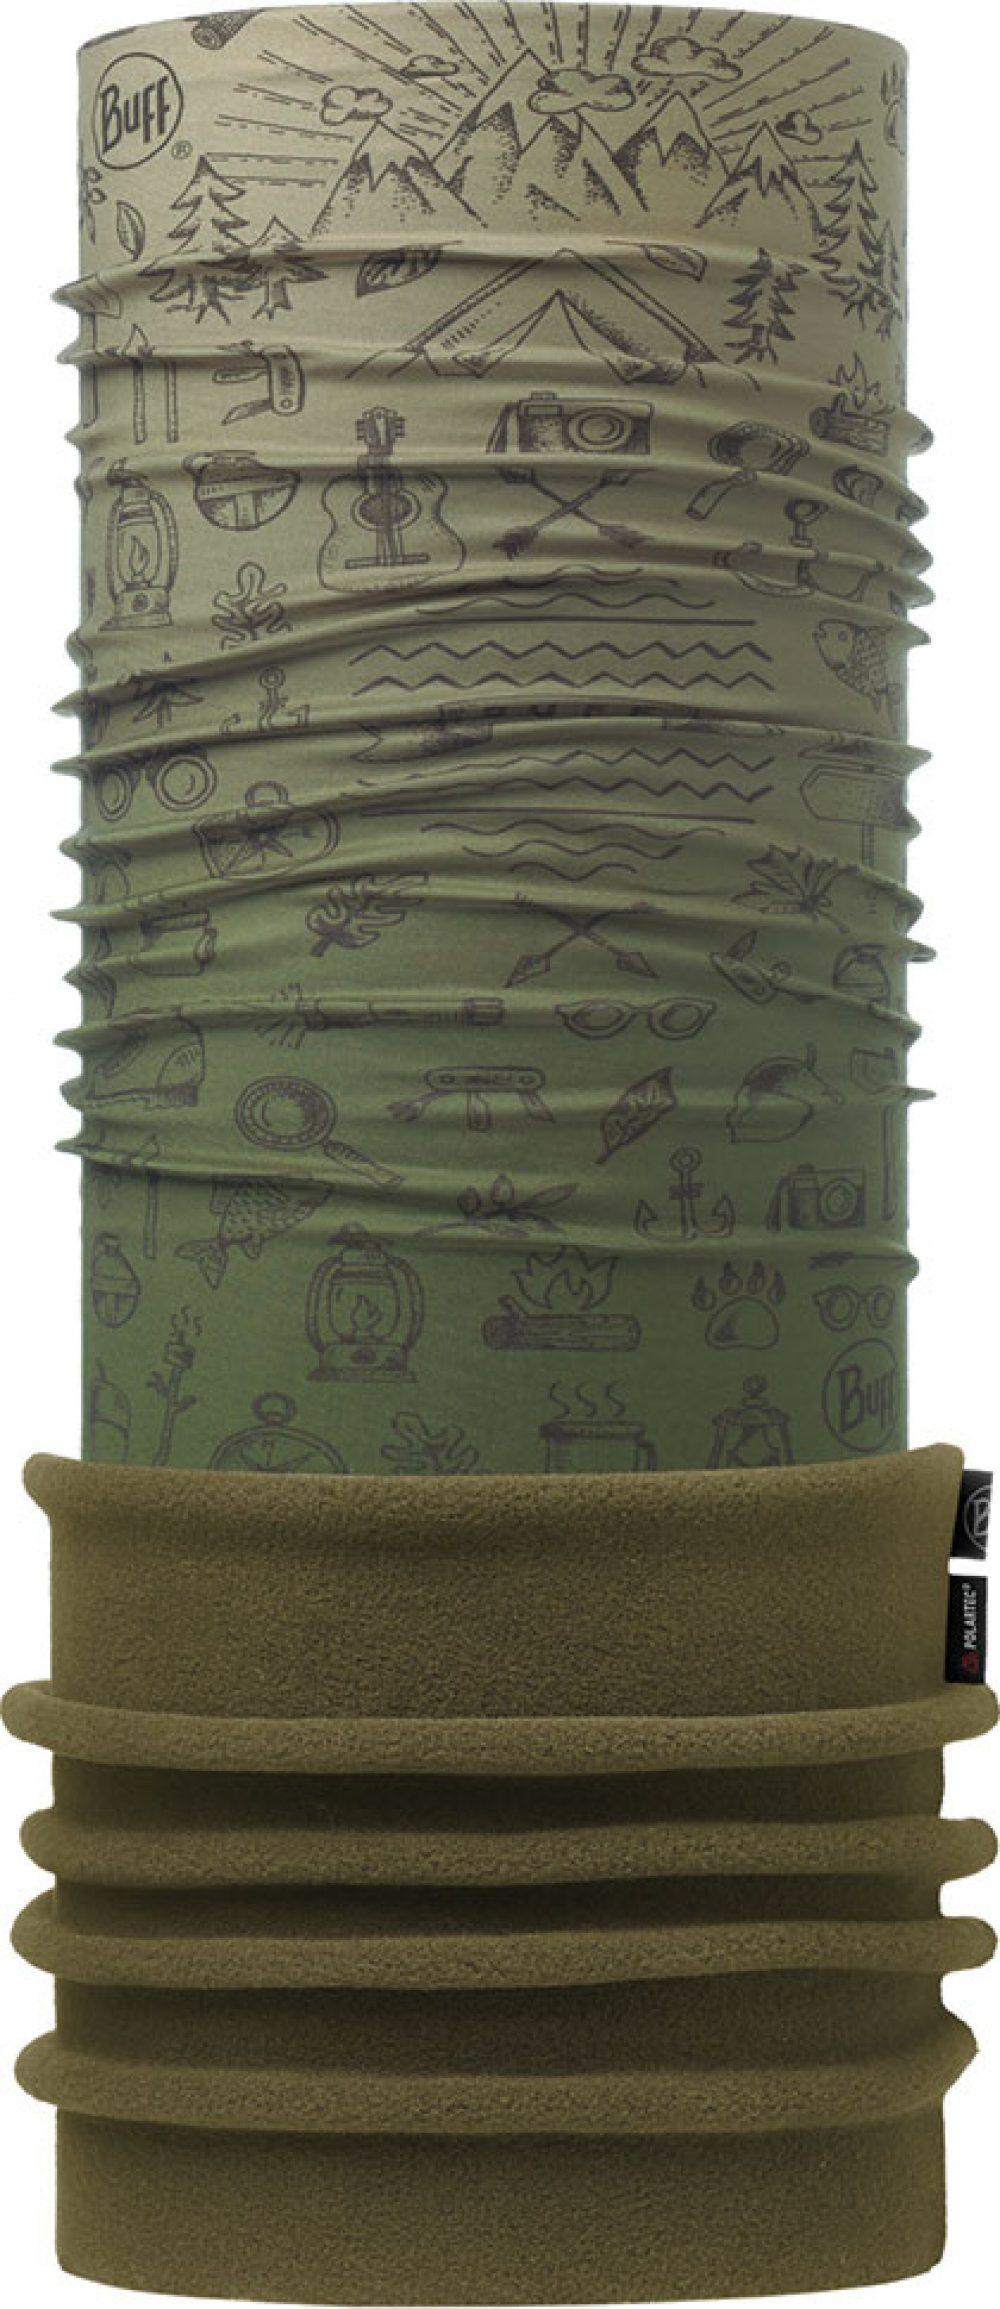 "Studio photo of the Polar Buff® Design ""Explorer Military"". Source: buff.eu"